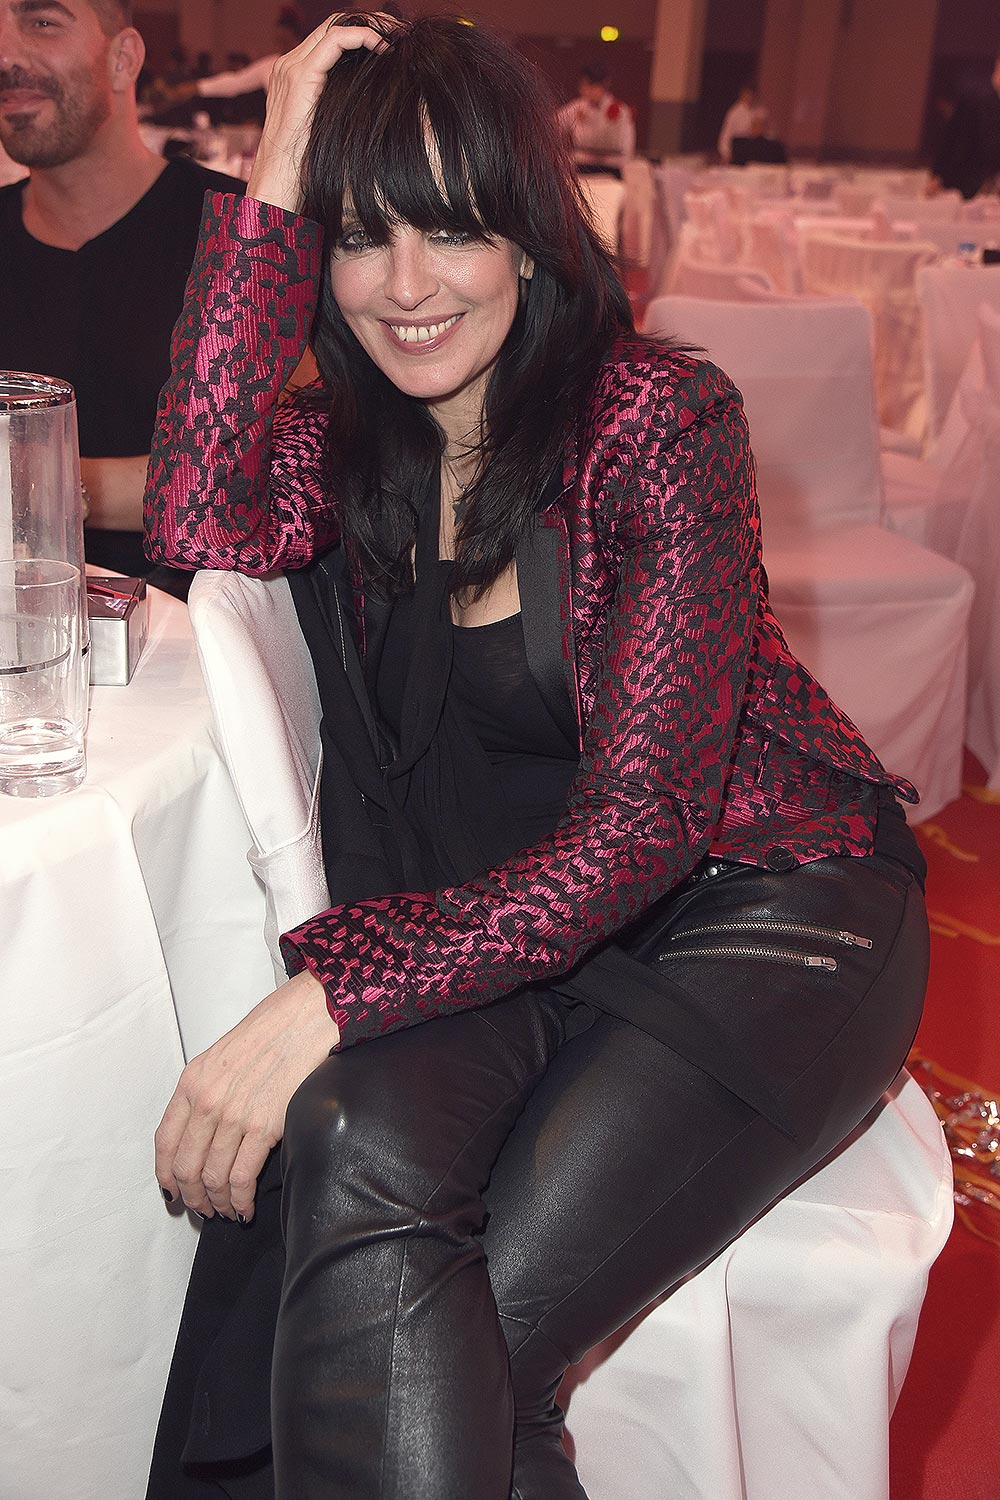 Nena Attends Prg Live Entertainment Award Leather